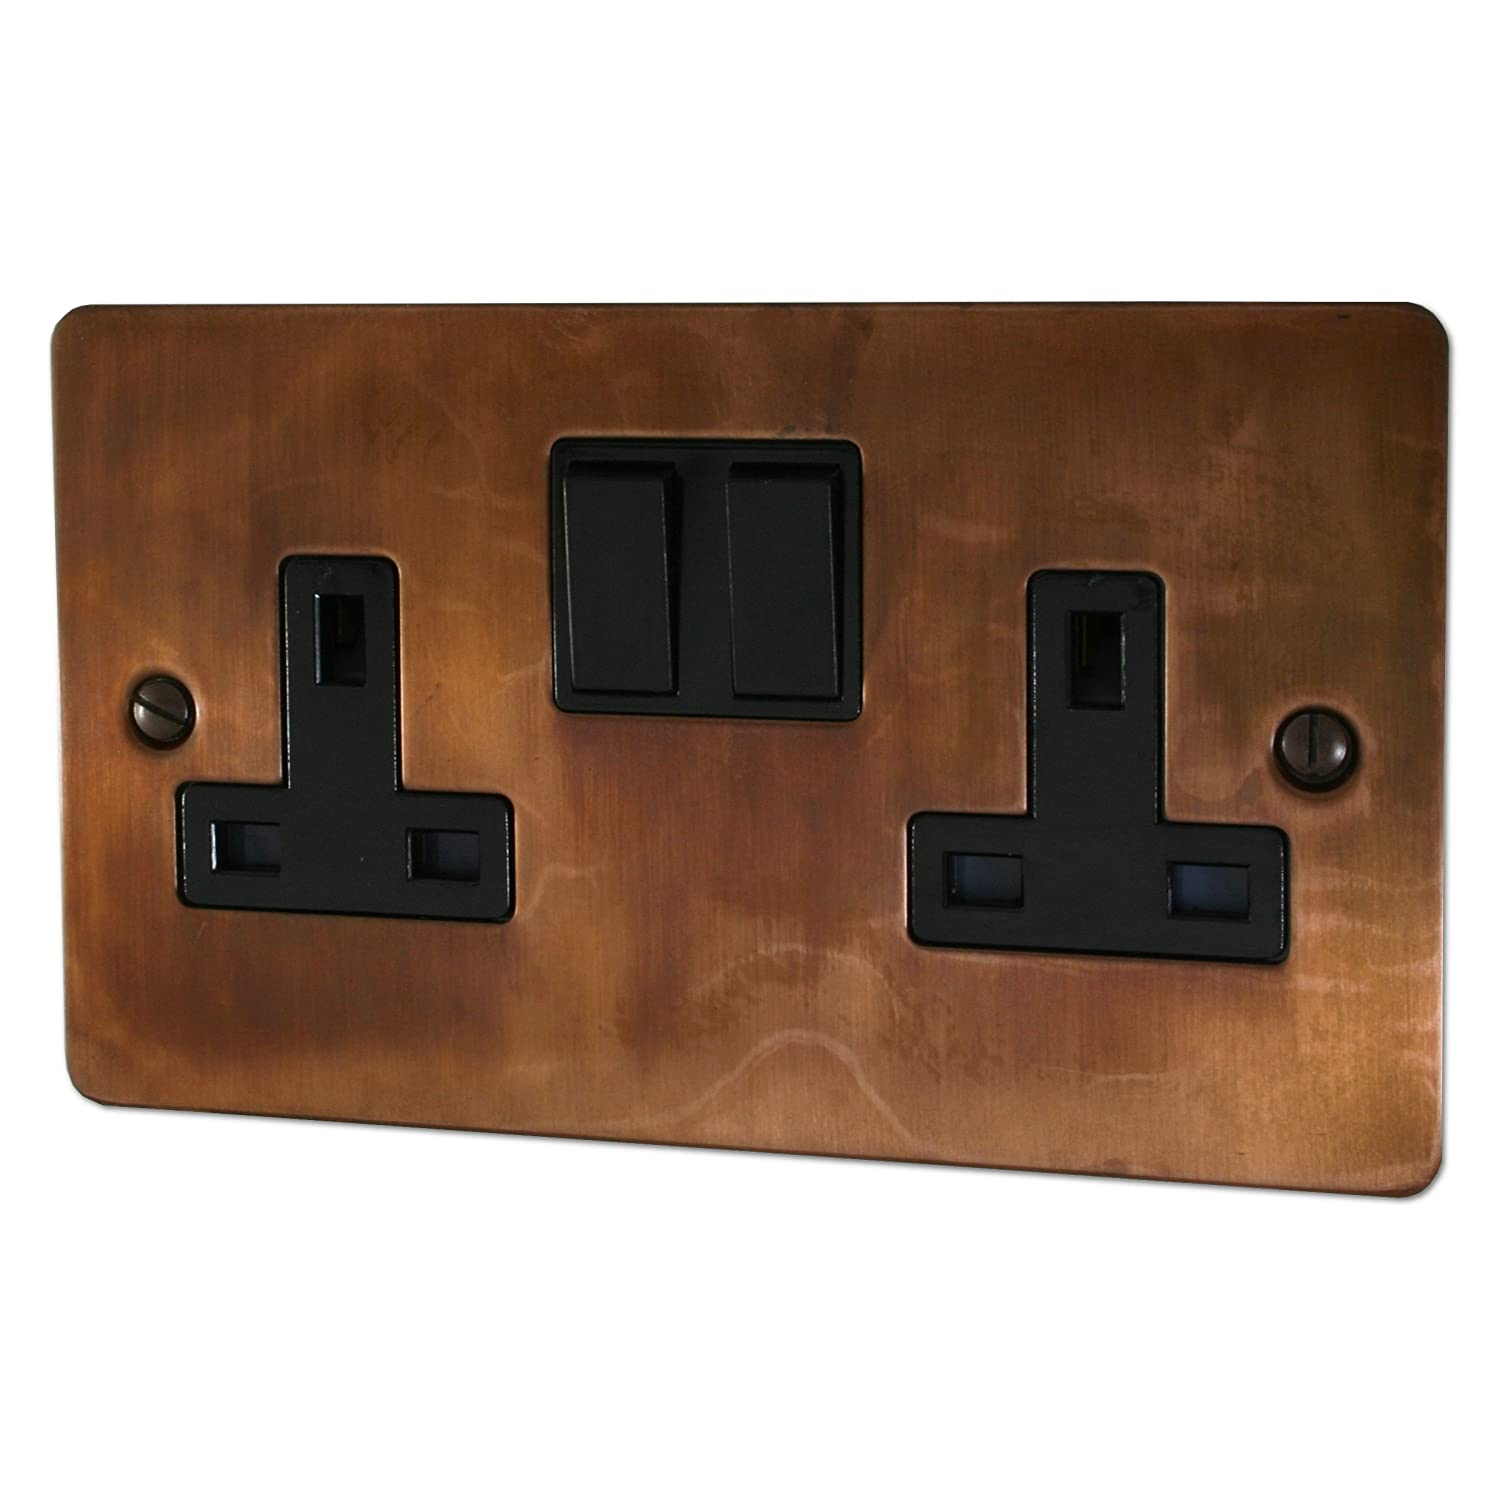 Flat Tarnished Copper Double Socket (Black Switch) - FTC10B G&H Brassware